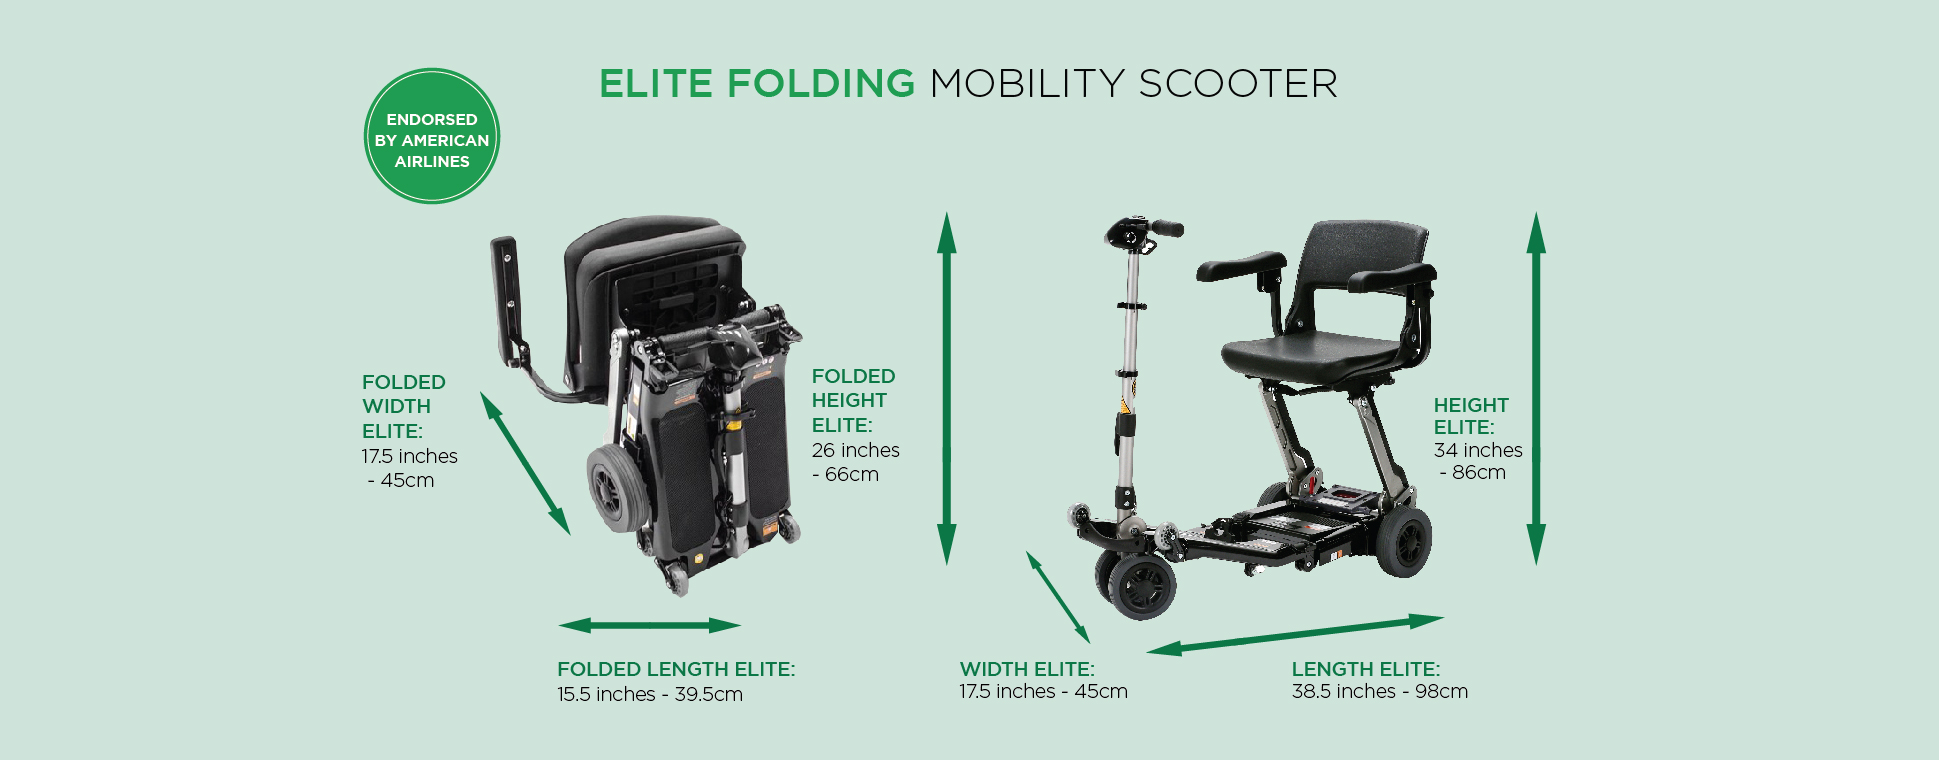 Elite folding mobility scooter